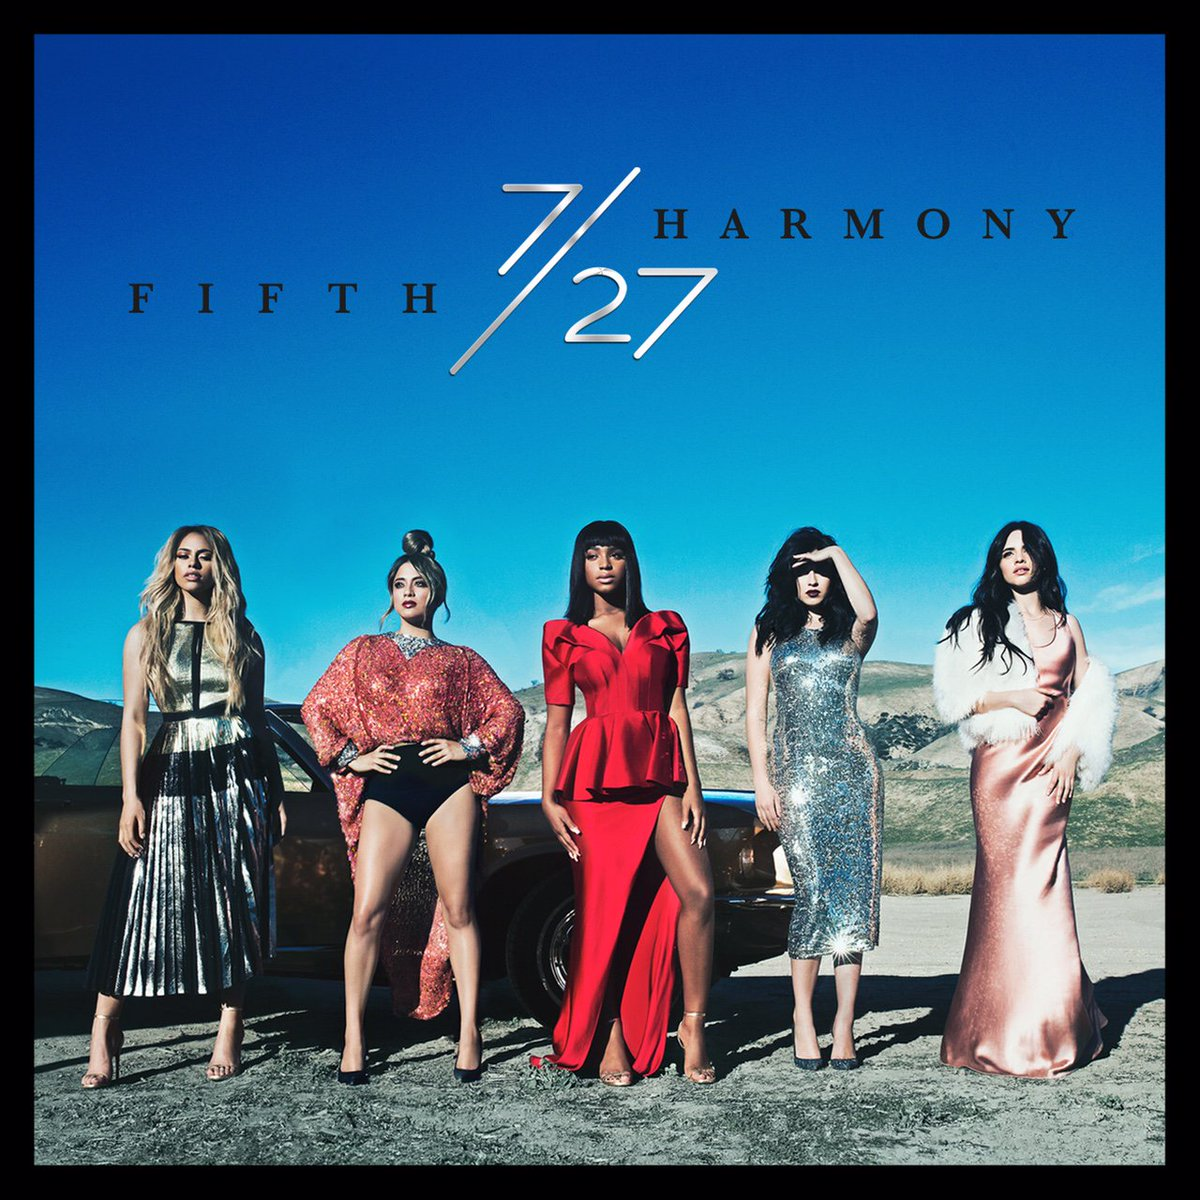 Hey #Harmonizers, new @FifthHarmony drops tomorrow! You excited to hear it every 98 minutes w/ us?? #HD983 https://t.co/kGonL4Dum5